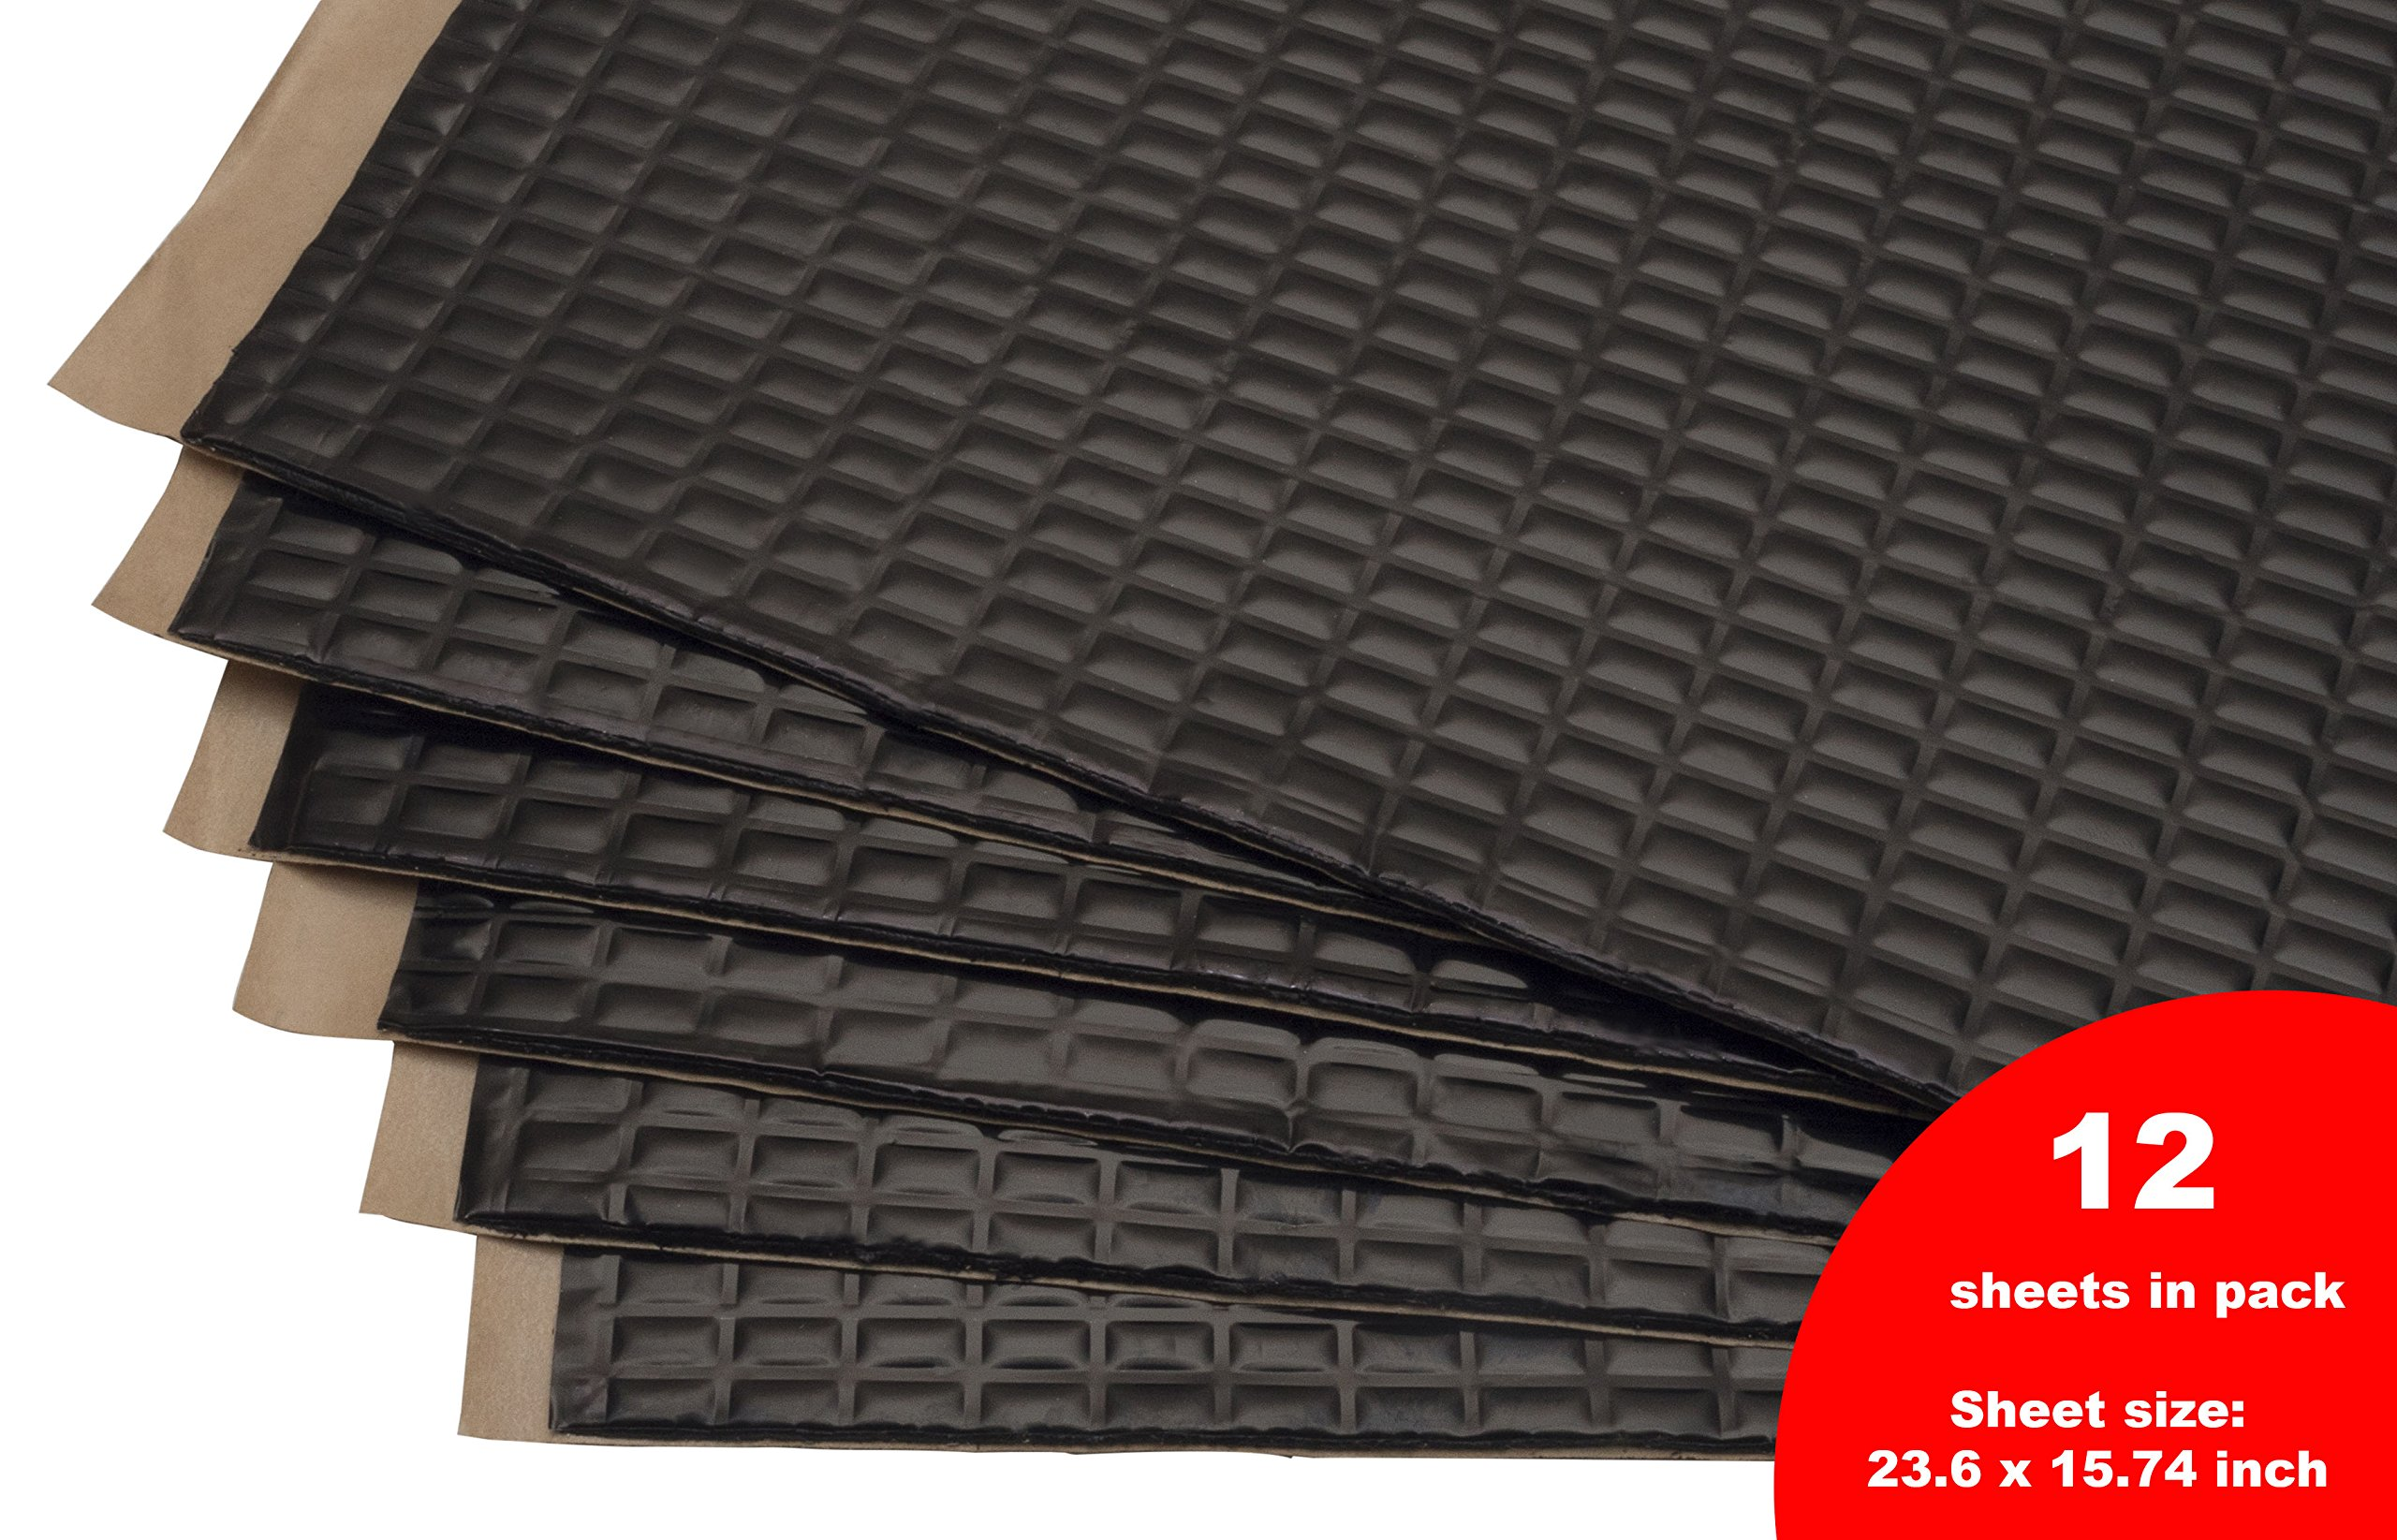 Siless Sound Deadening mat 80mil 30sqft - Sound Deadener Mat - Car Sound Dampening material - Sound dampener - Sound deadening material sound Insulation - Car Sound deadening Bulk Kit Trunk